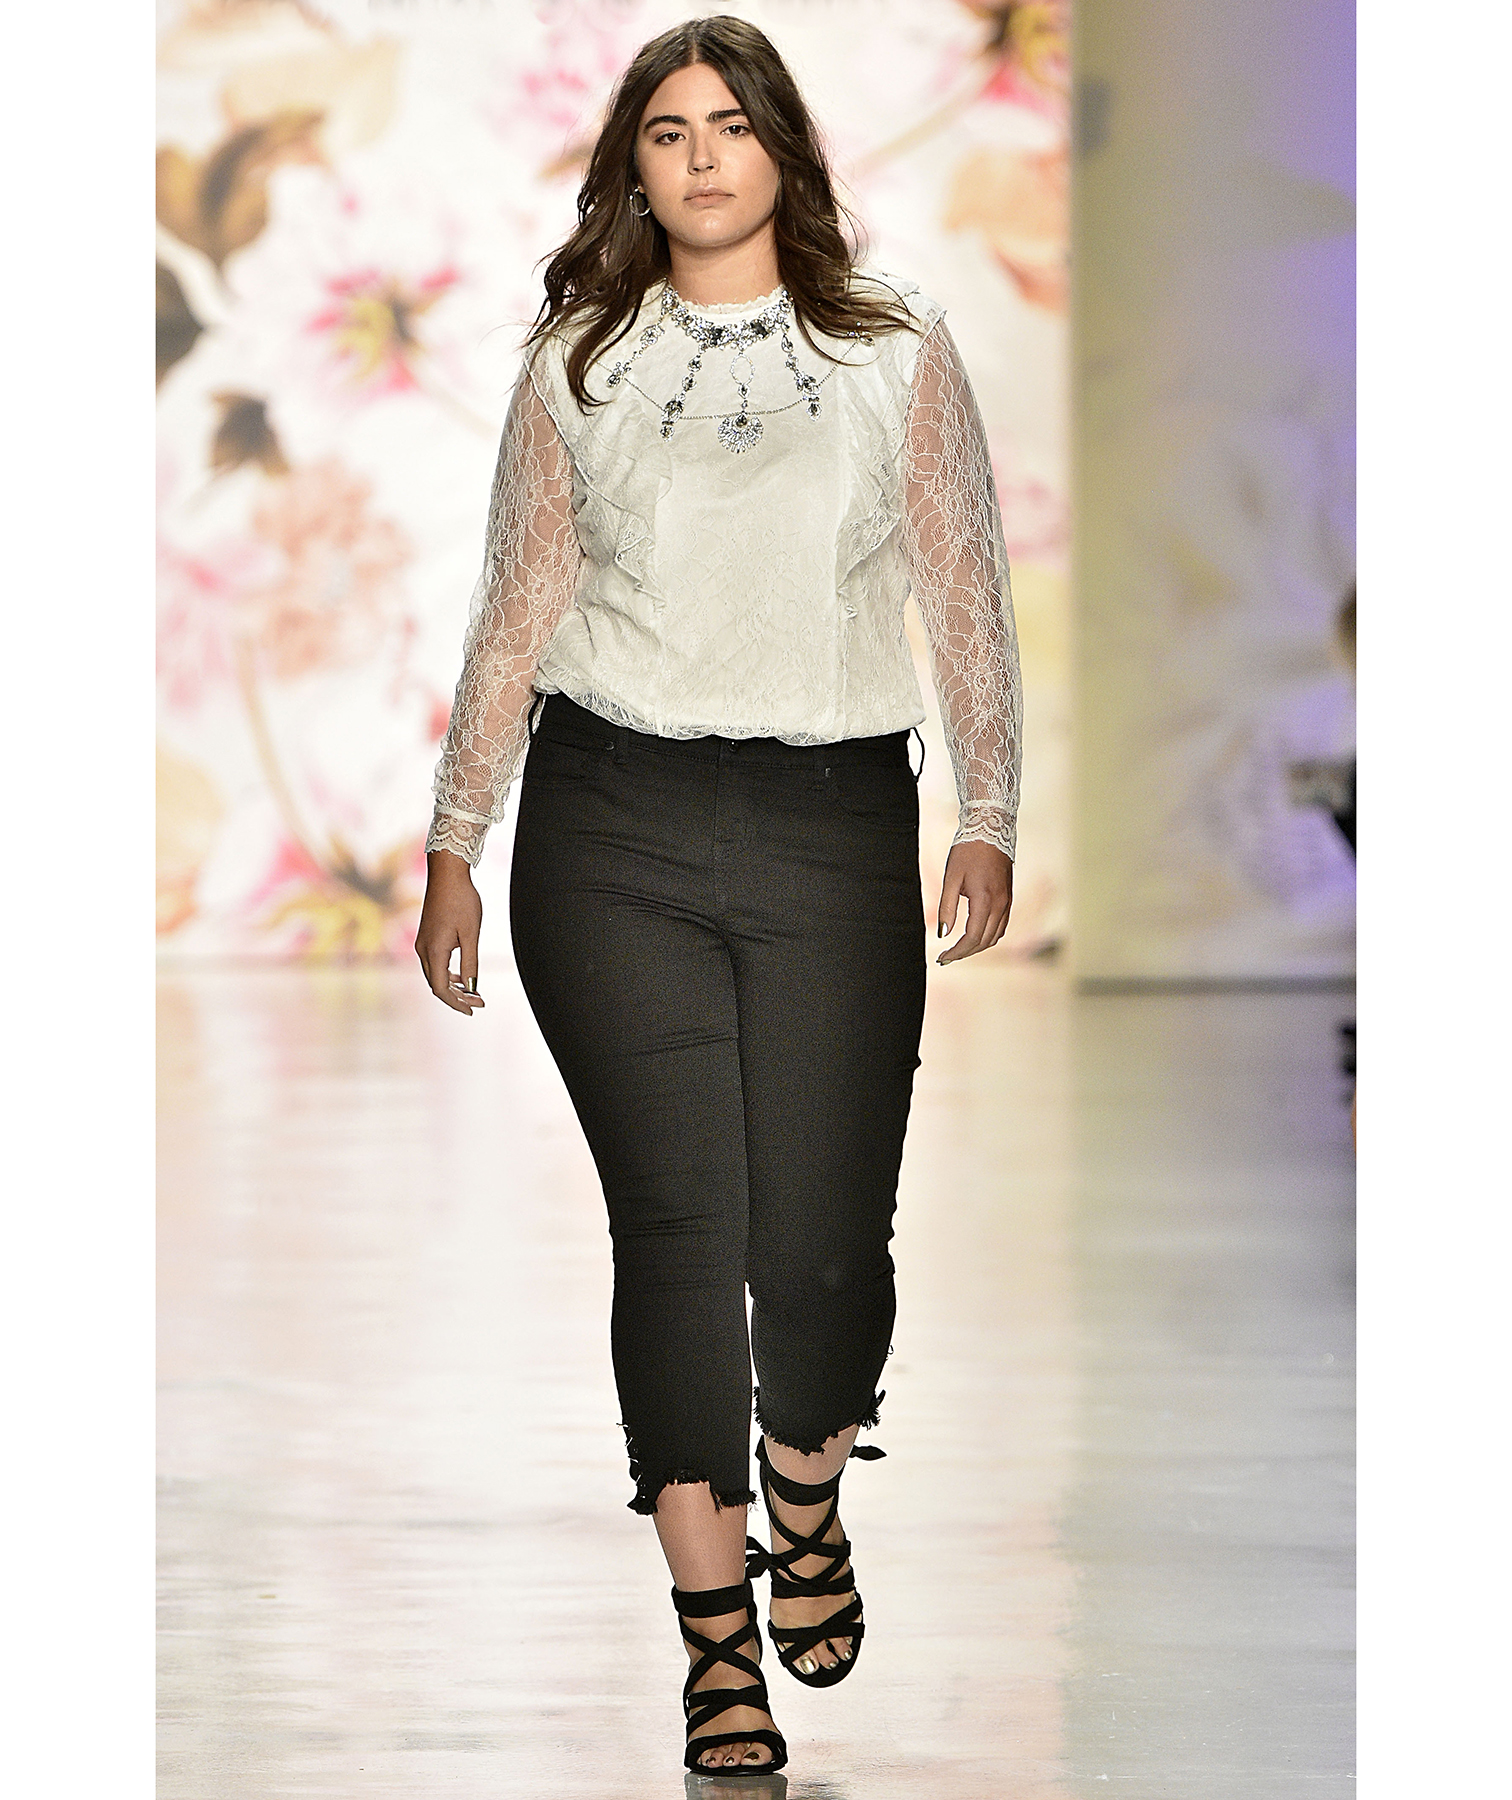 d4518c67c0c This Brand Made Its Fashion Week Debut Featuring Only Plus Size Models